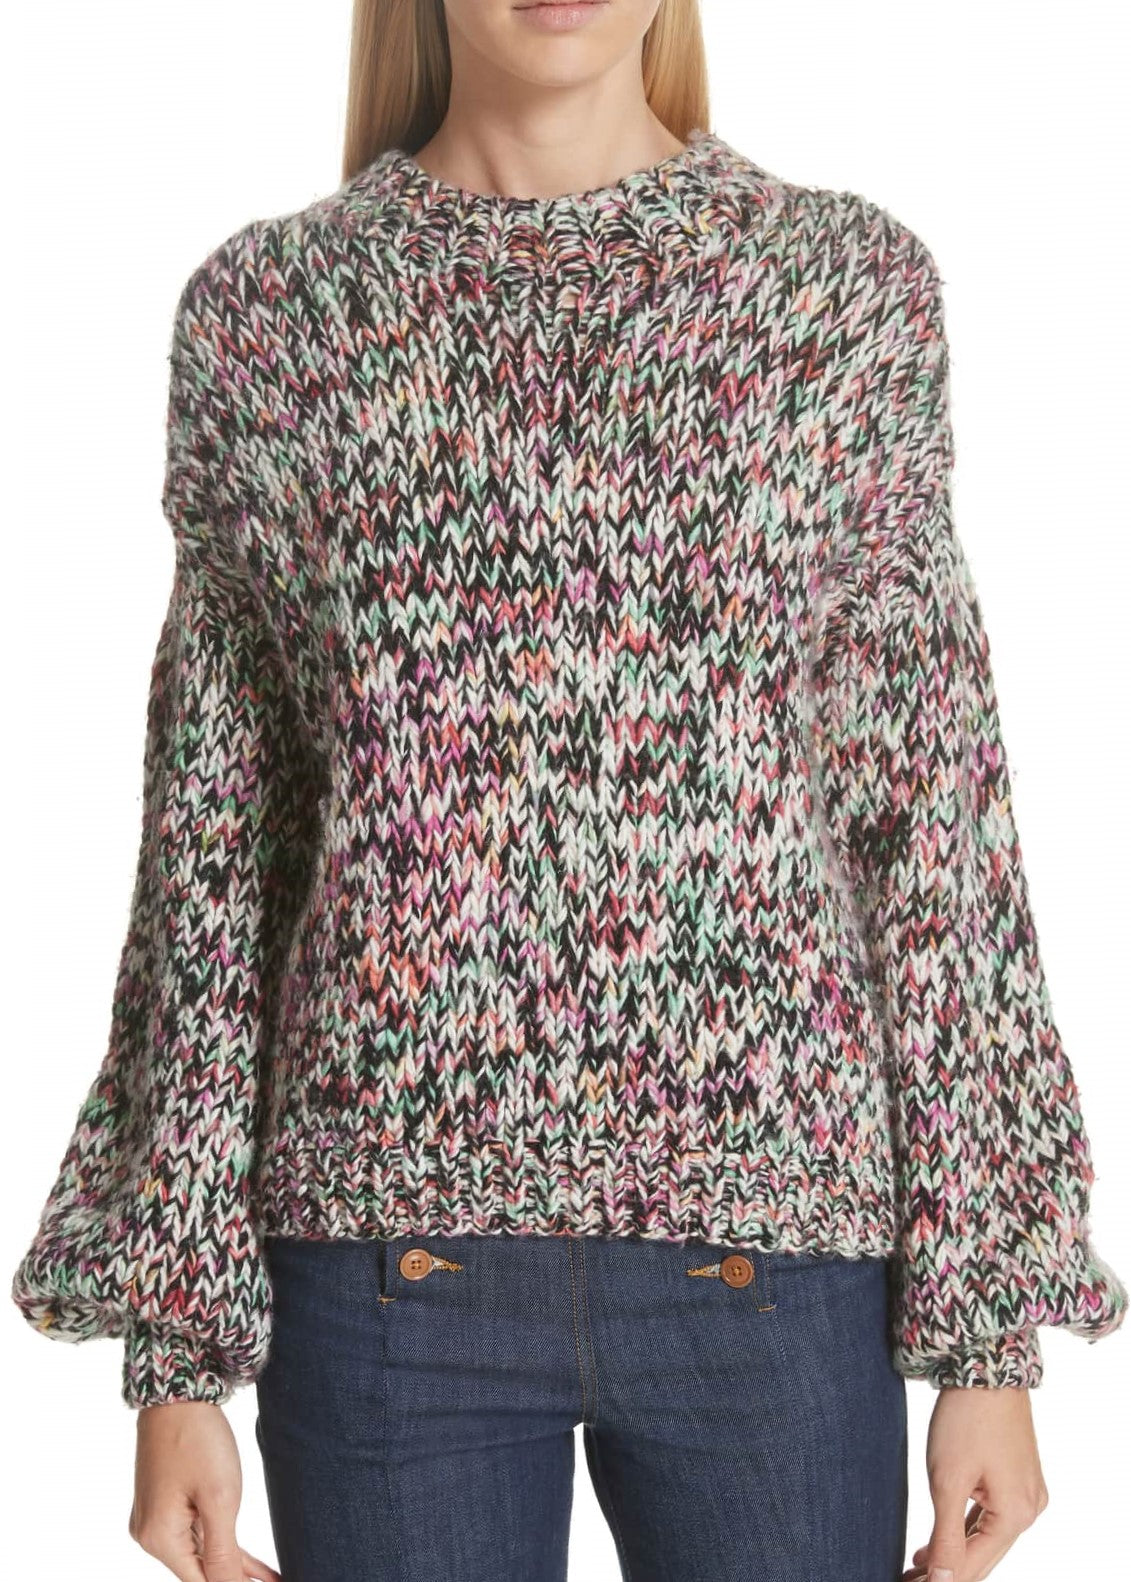 Ulla Johnson Rhea pullover in multi